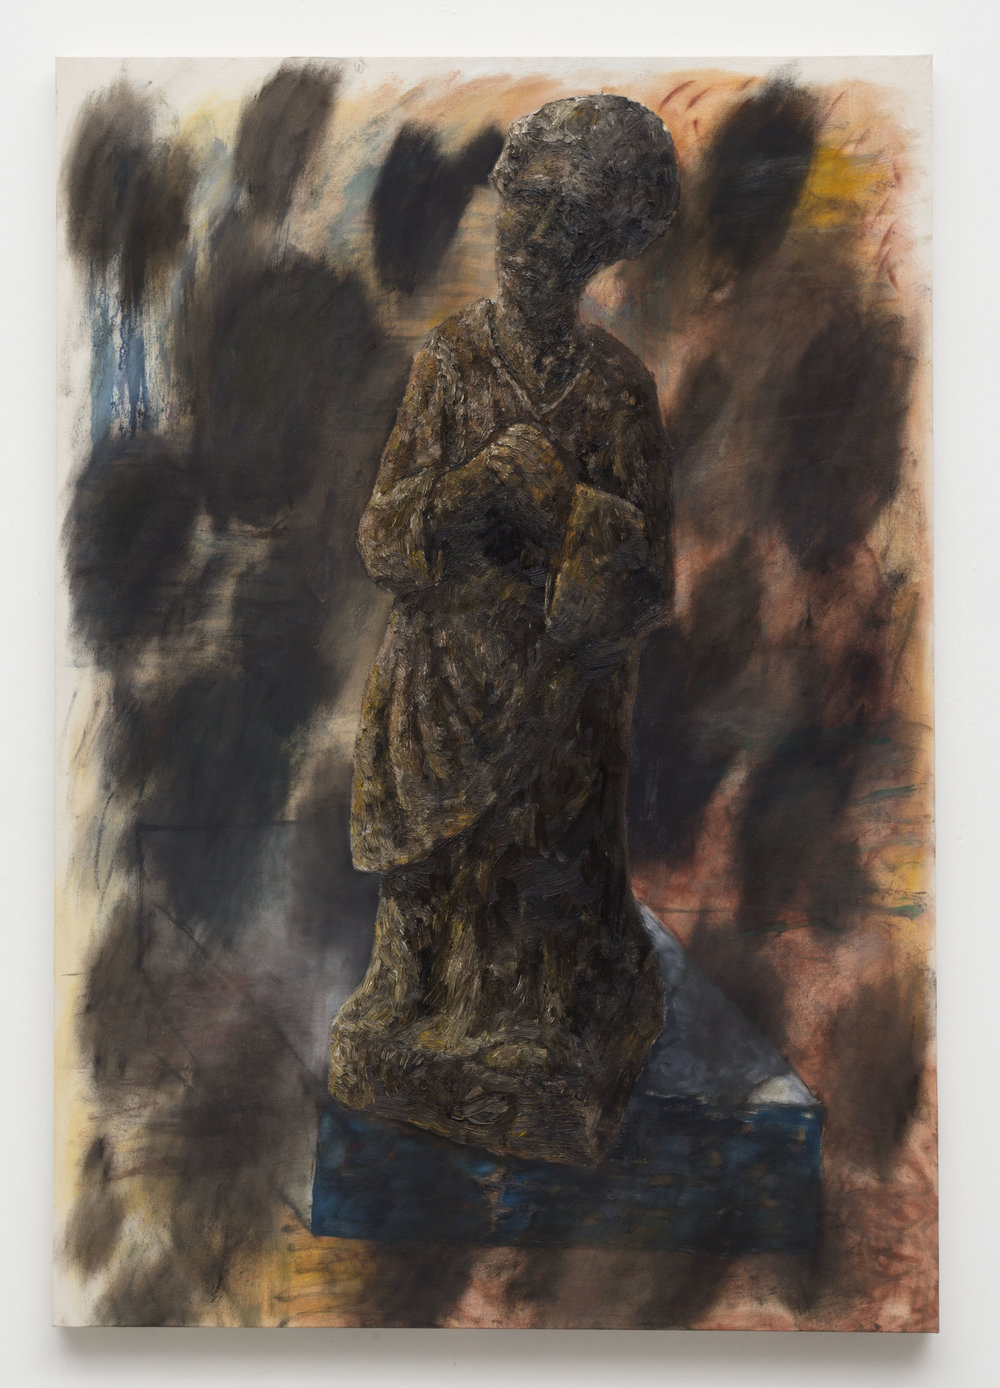 Penitent Wooden Figurine,  2014  Oil on canvas  65 x 45 inches